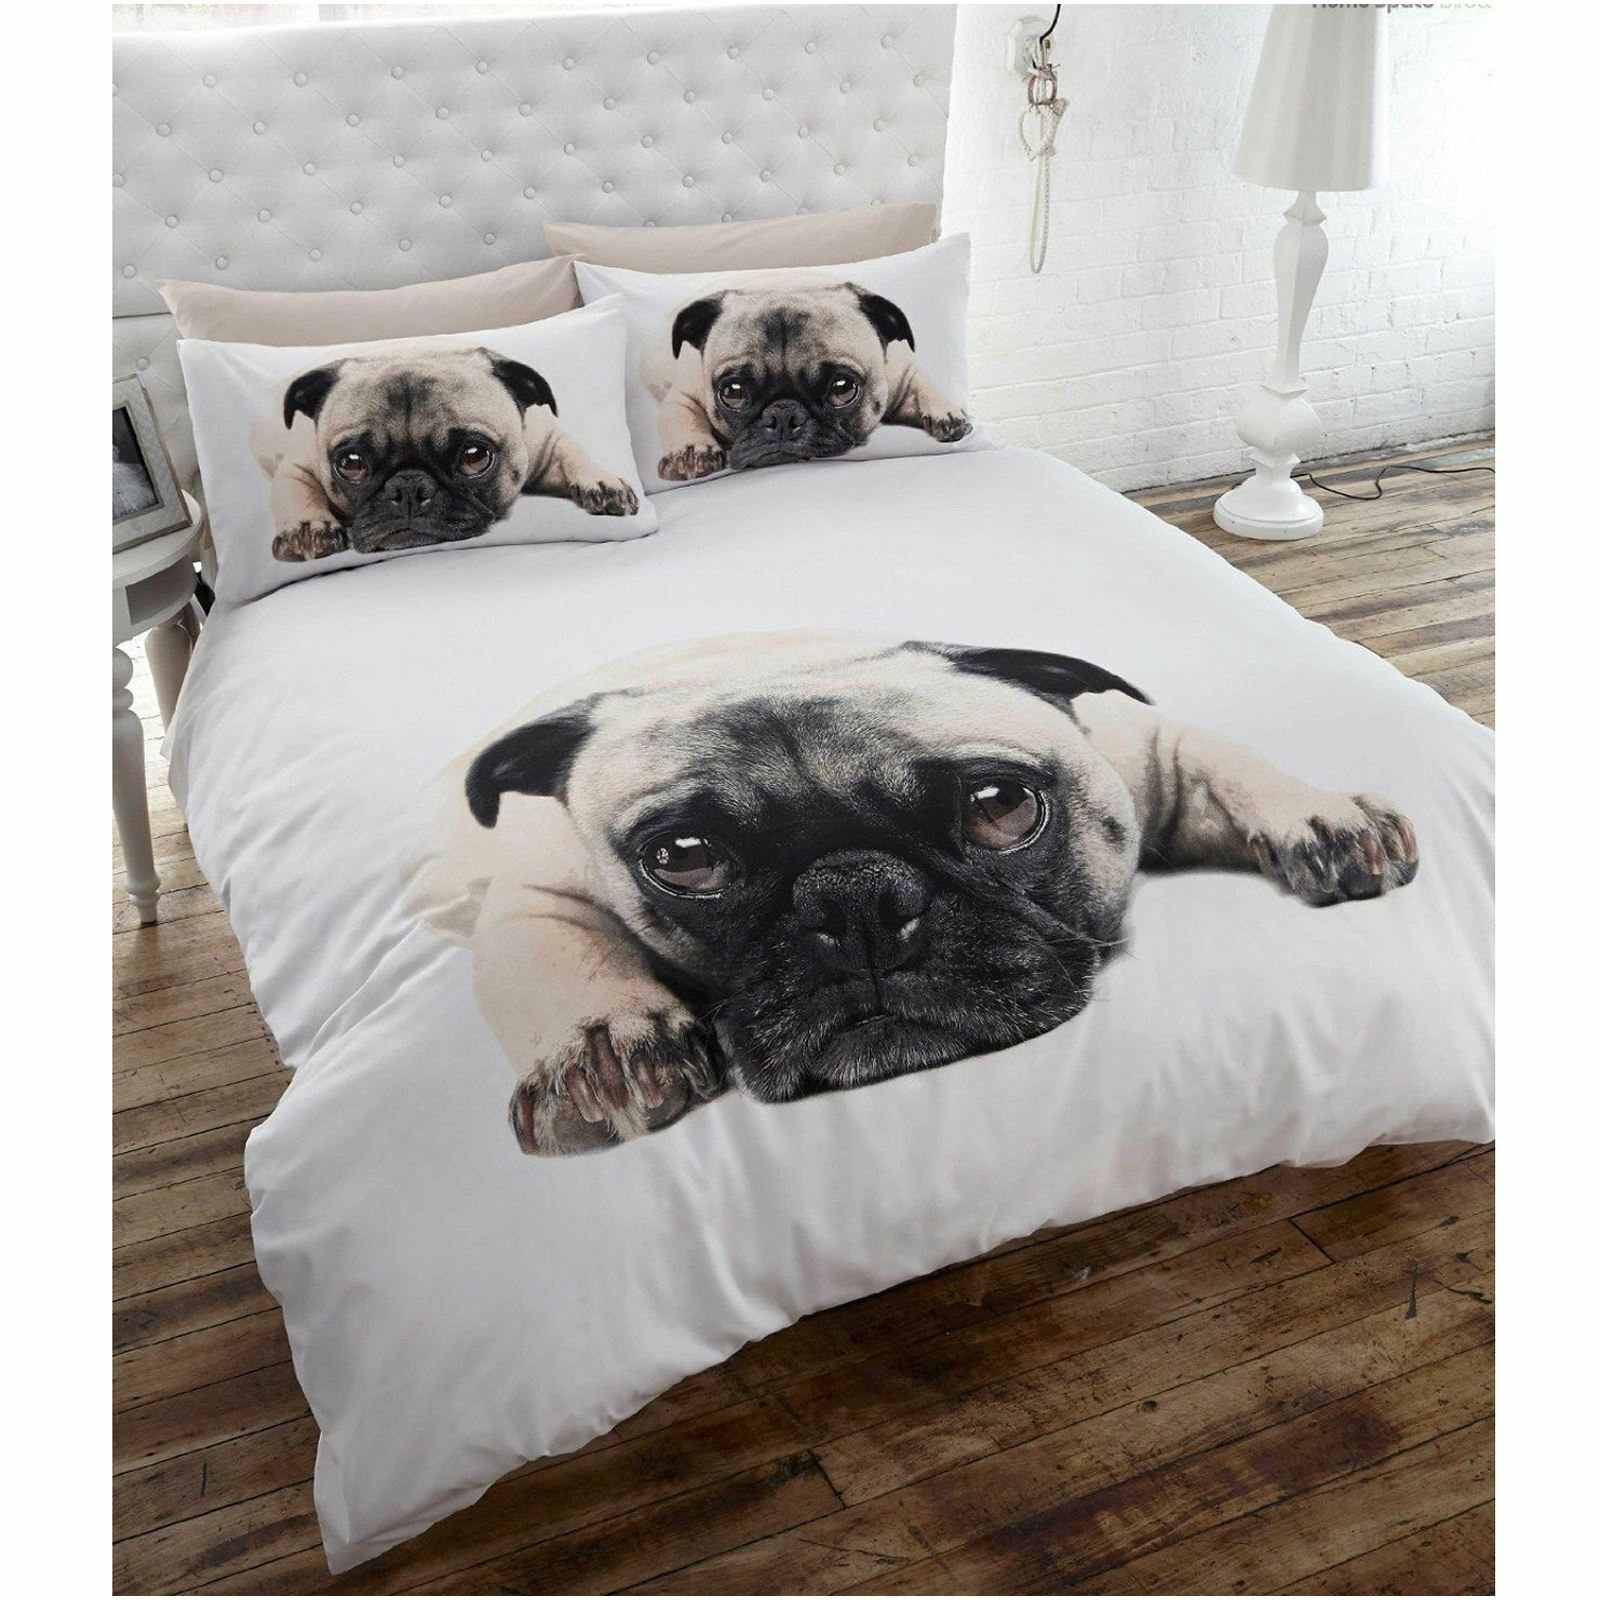 DOUBLE DOG PUPPY PUG DUVET COVER BEDDING ANIMAL NEW